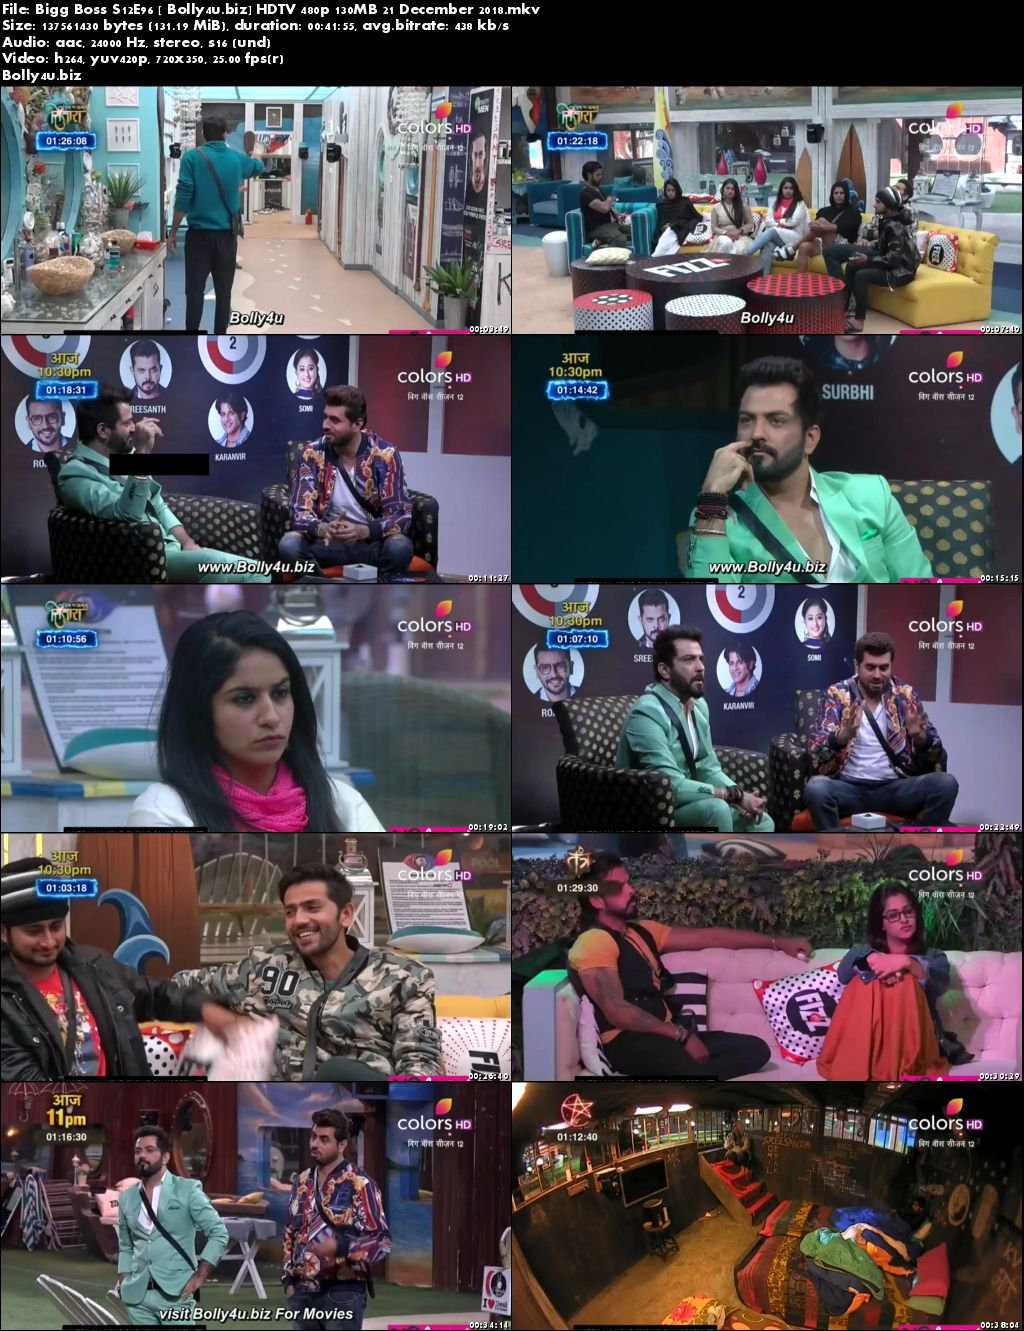 Bigg Boss S12E96 HDTV 480p 140MB 21 December 2018 Download